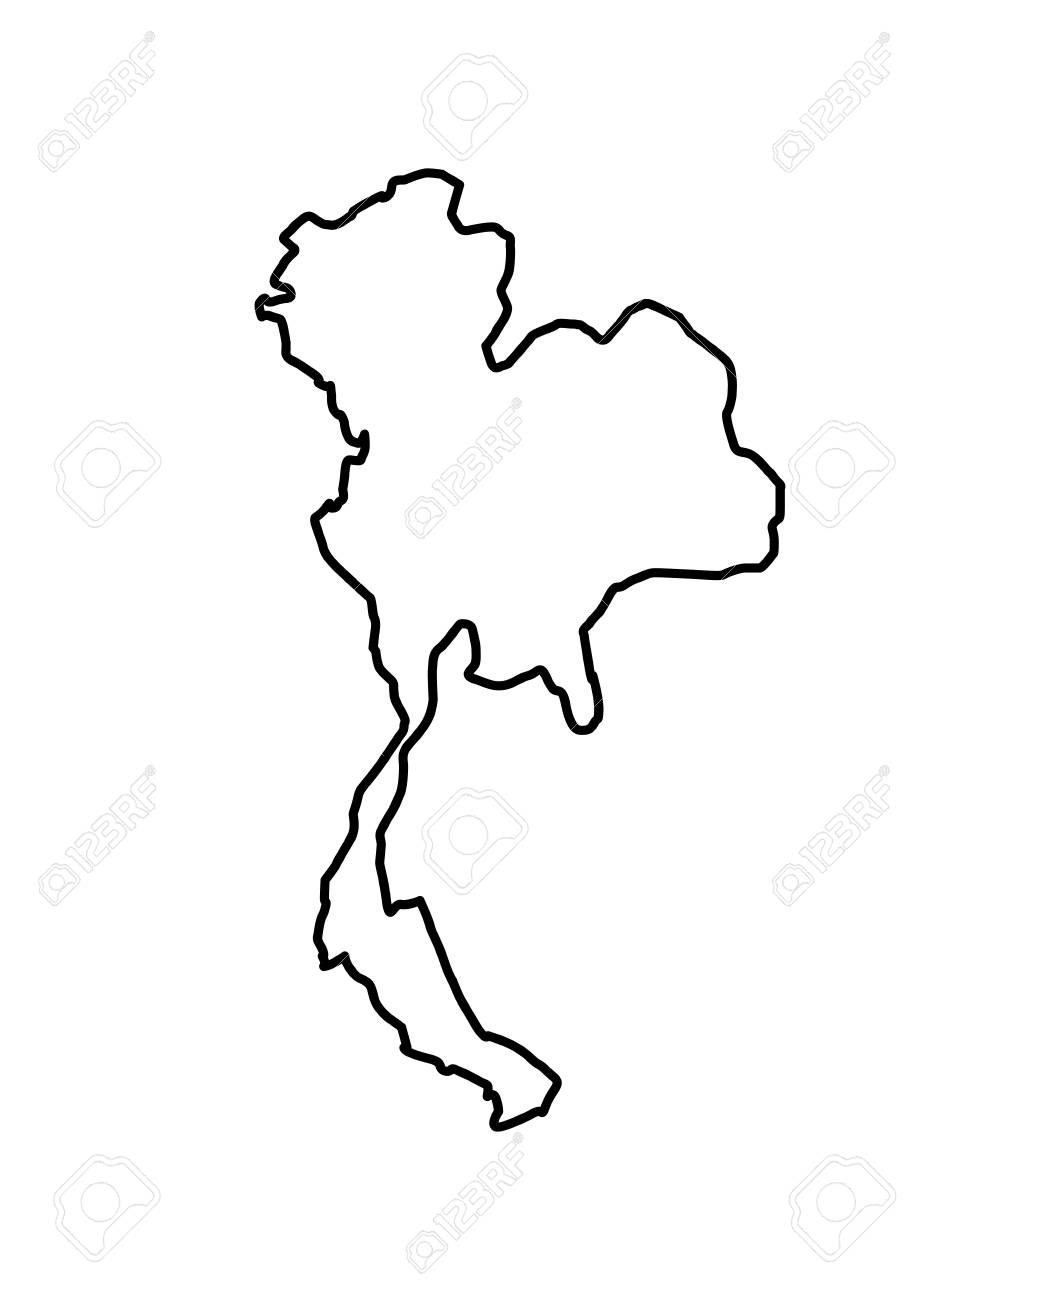 thailand map geography location country vector illustration outline..